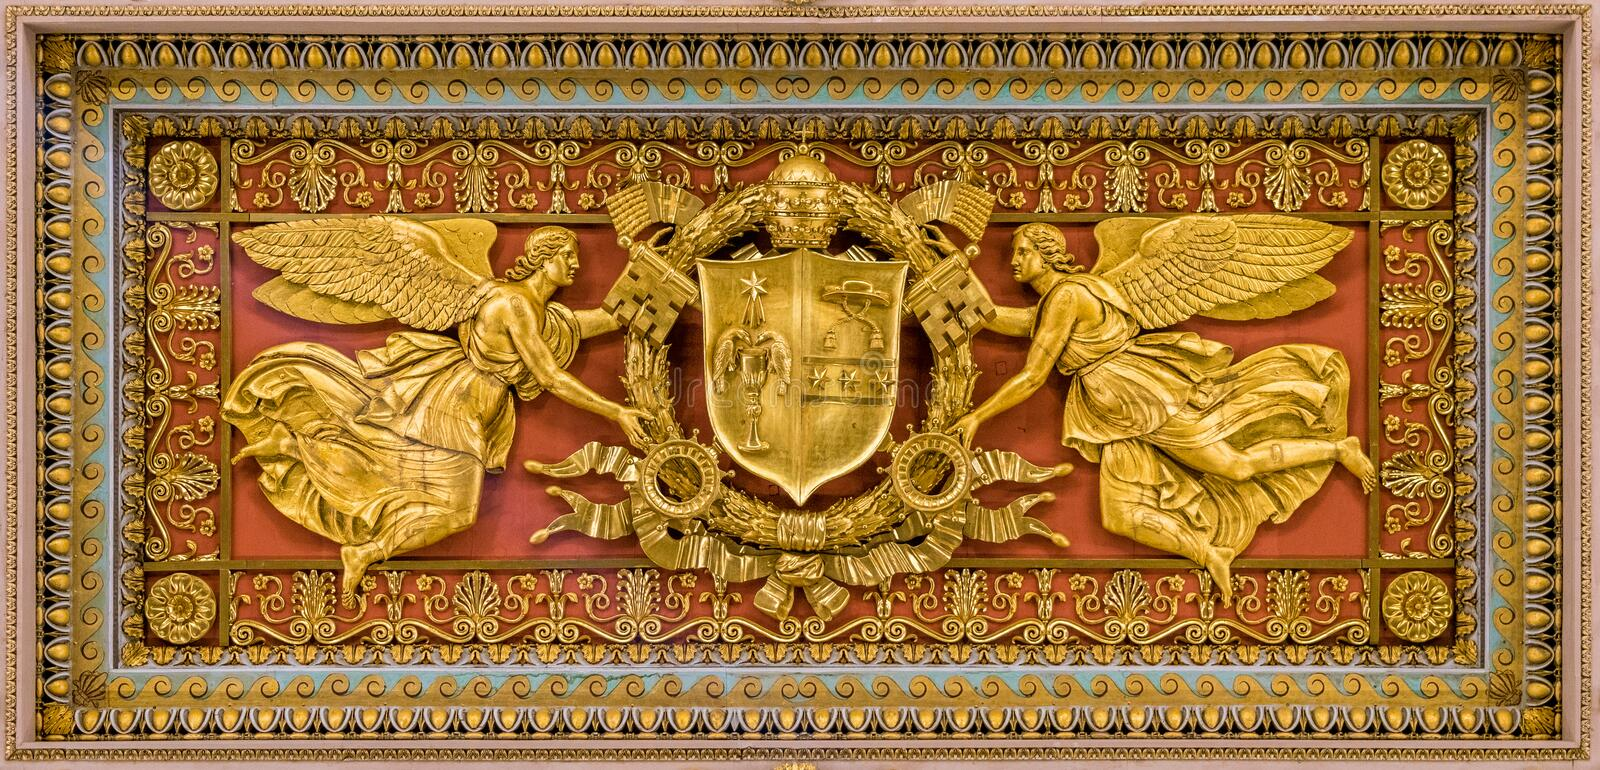 Gregory XVI coat of arms from the ceiling of the Basilica of Saint Paul Outside the Walls, in Rome. The Papal Basilica of St. Paul Outside the Walls, commonly stock images